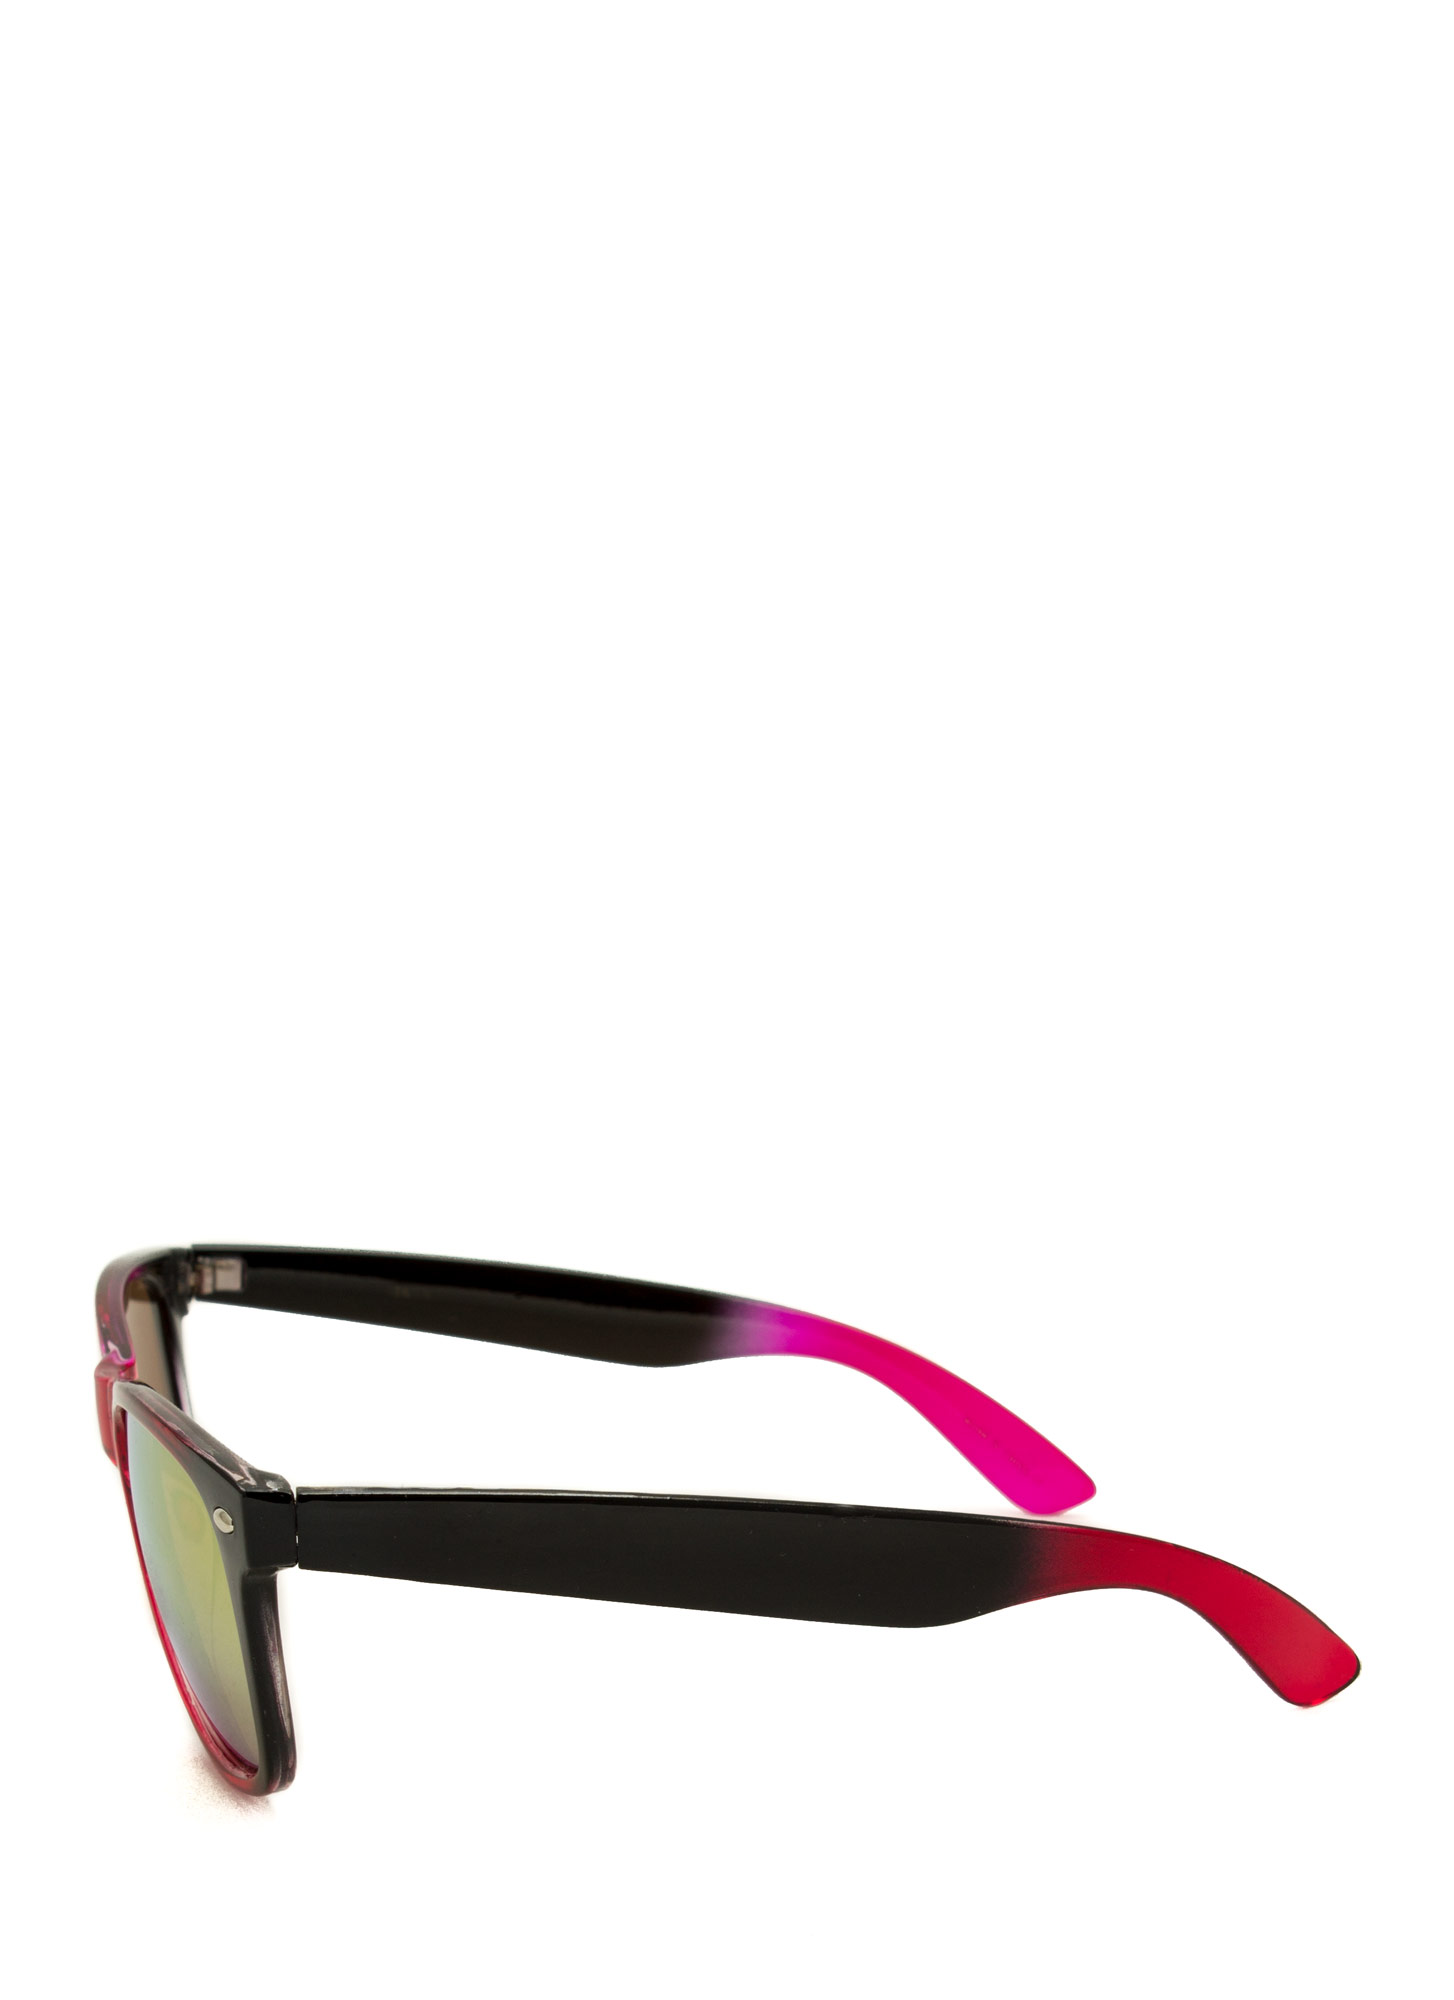 Multicolor Reflective Sunglasses FUCHMULTI